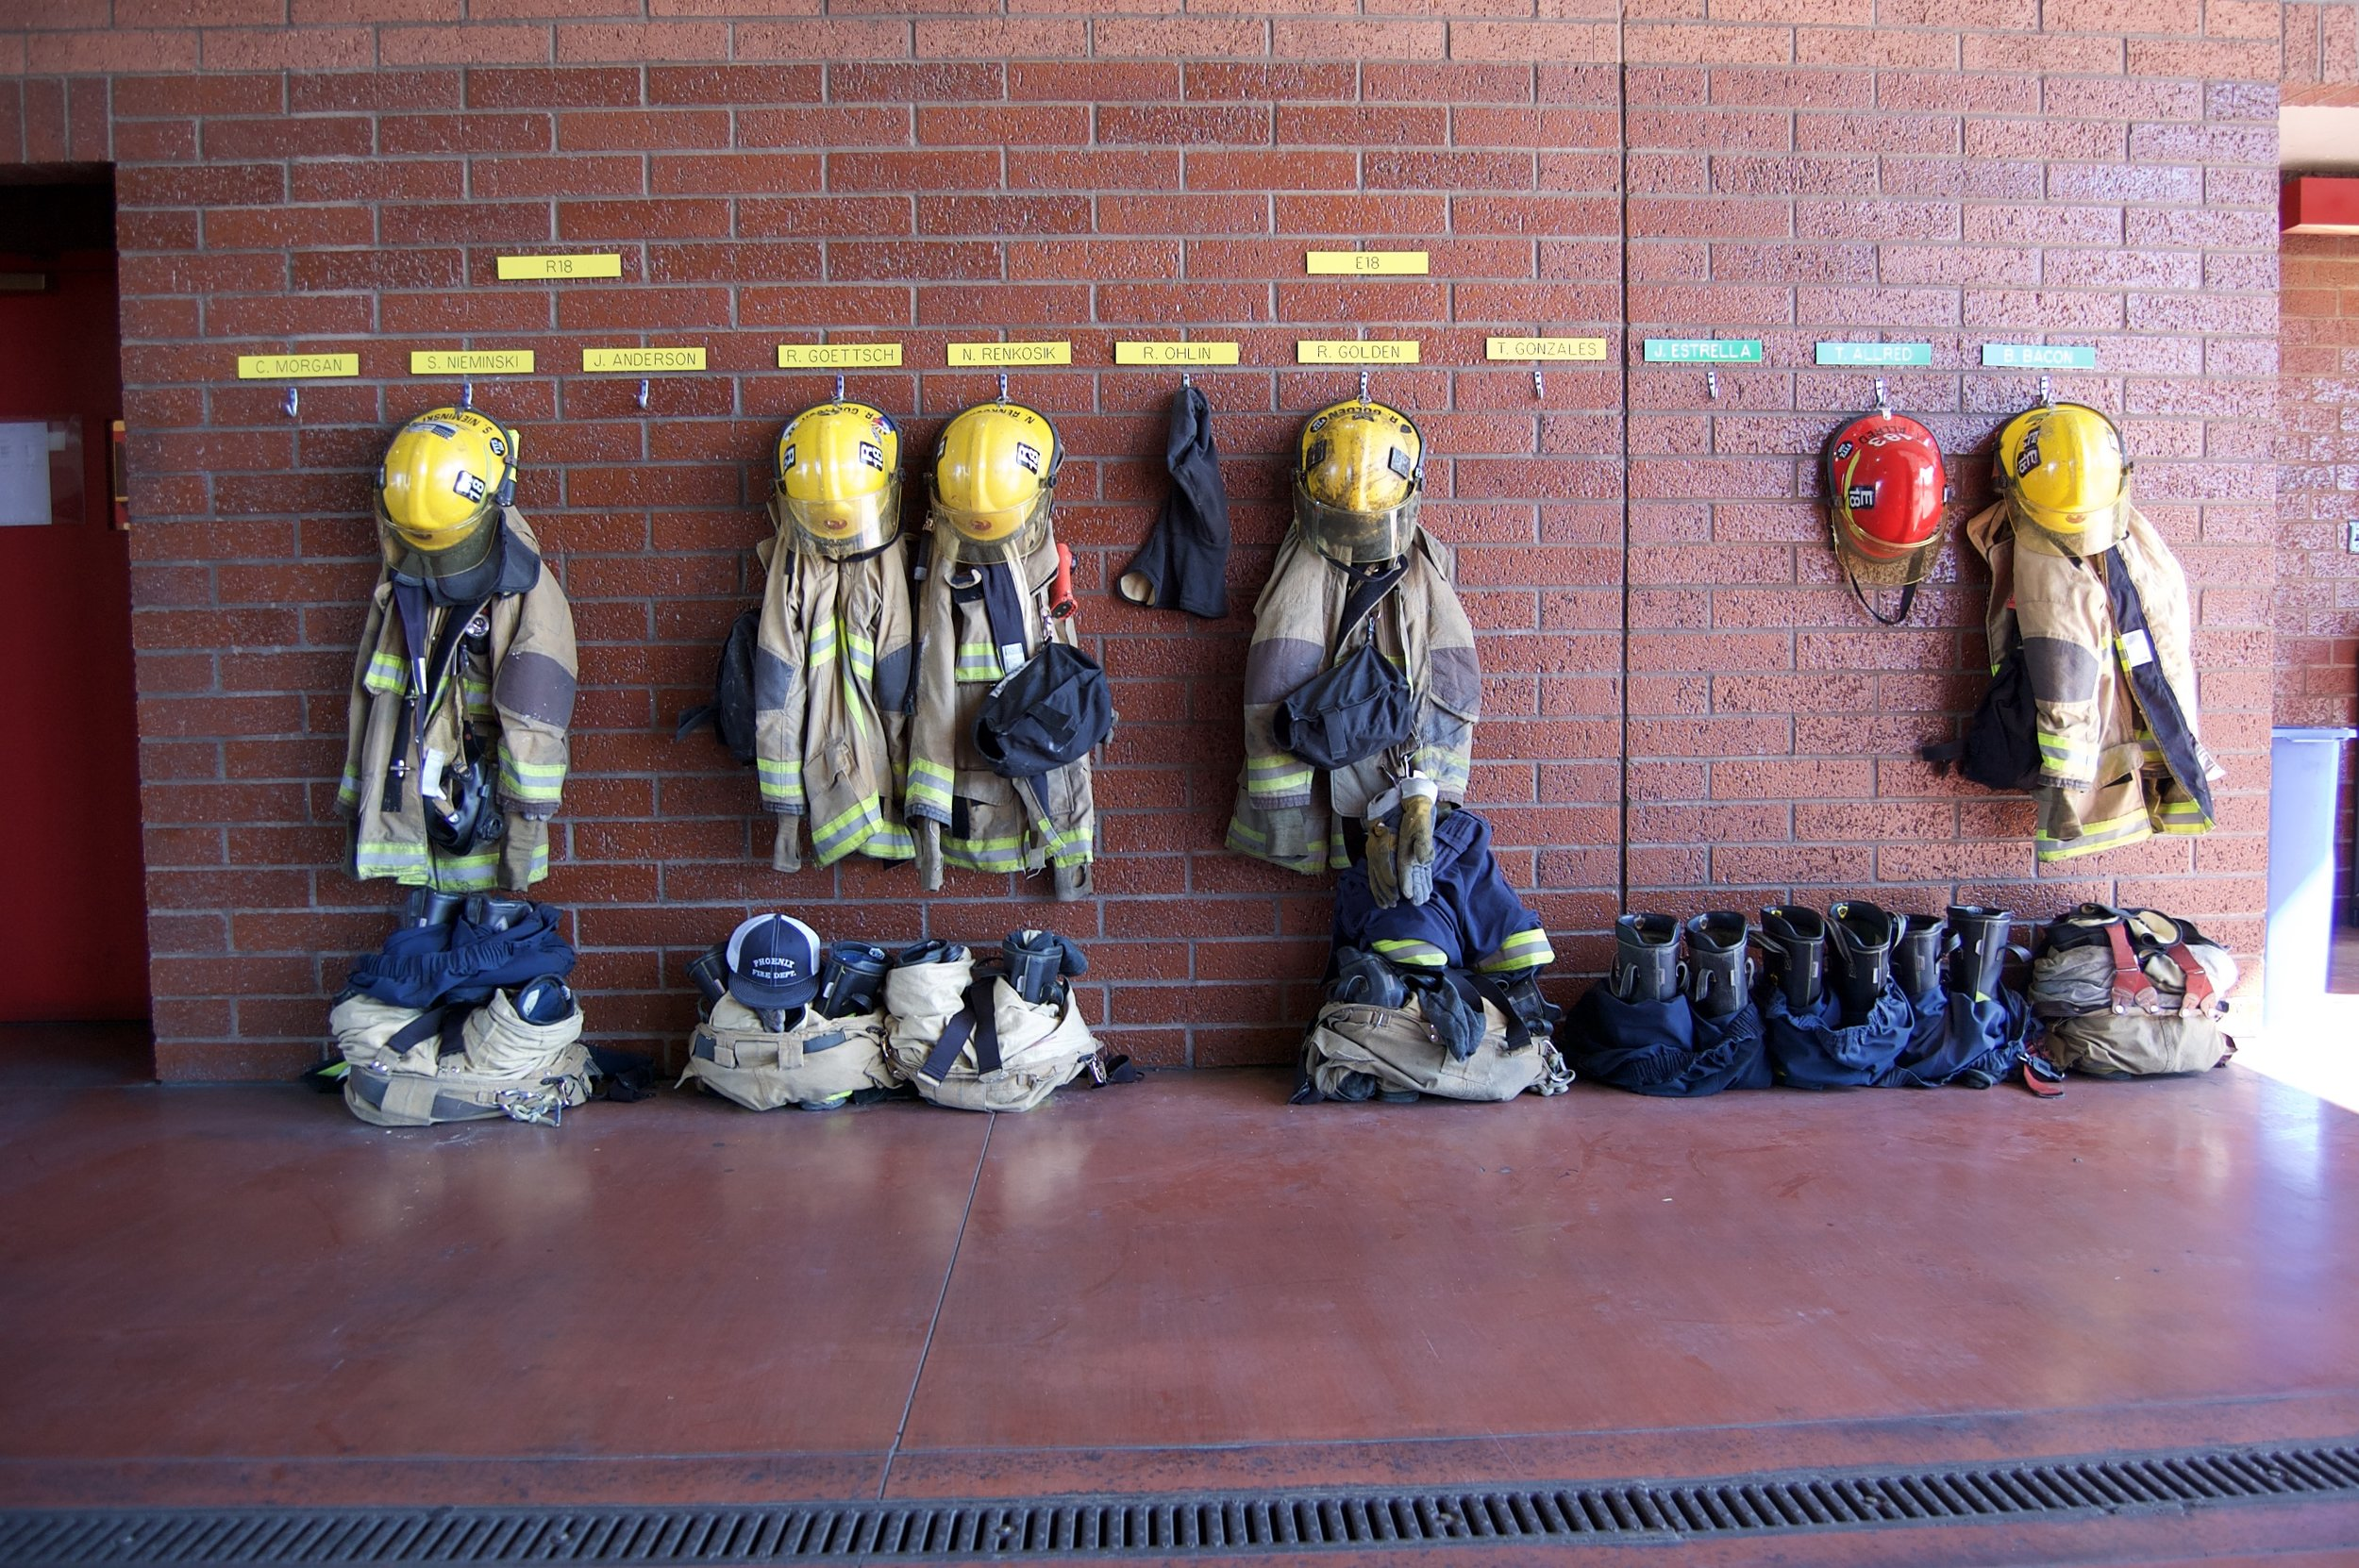 Want to Join the Team? - If you're an active firefighter, help train a new generation of firefighters with us as a VetRep.